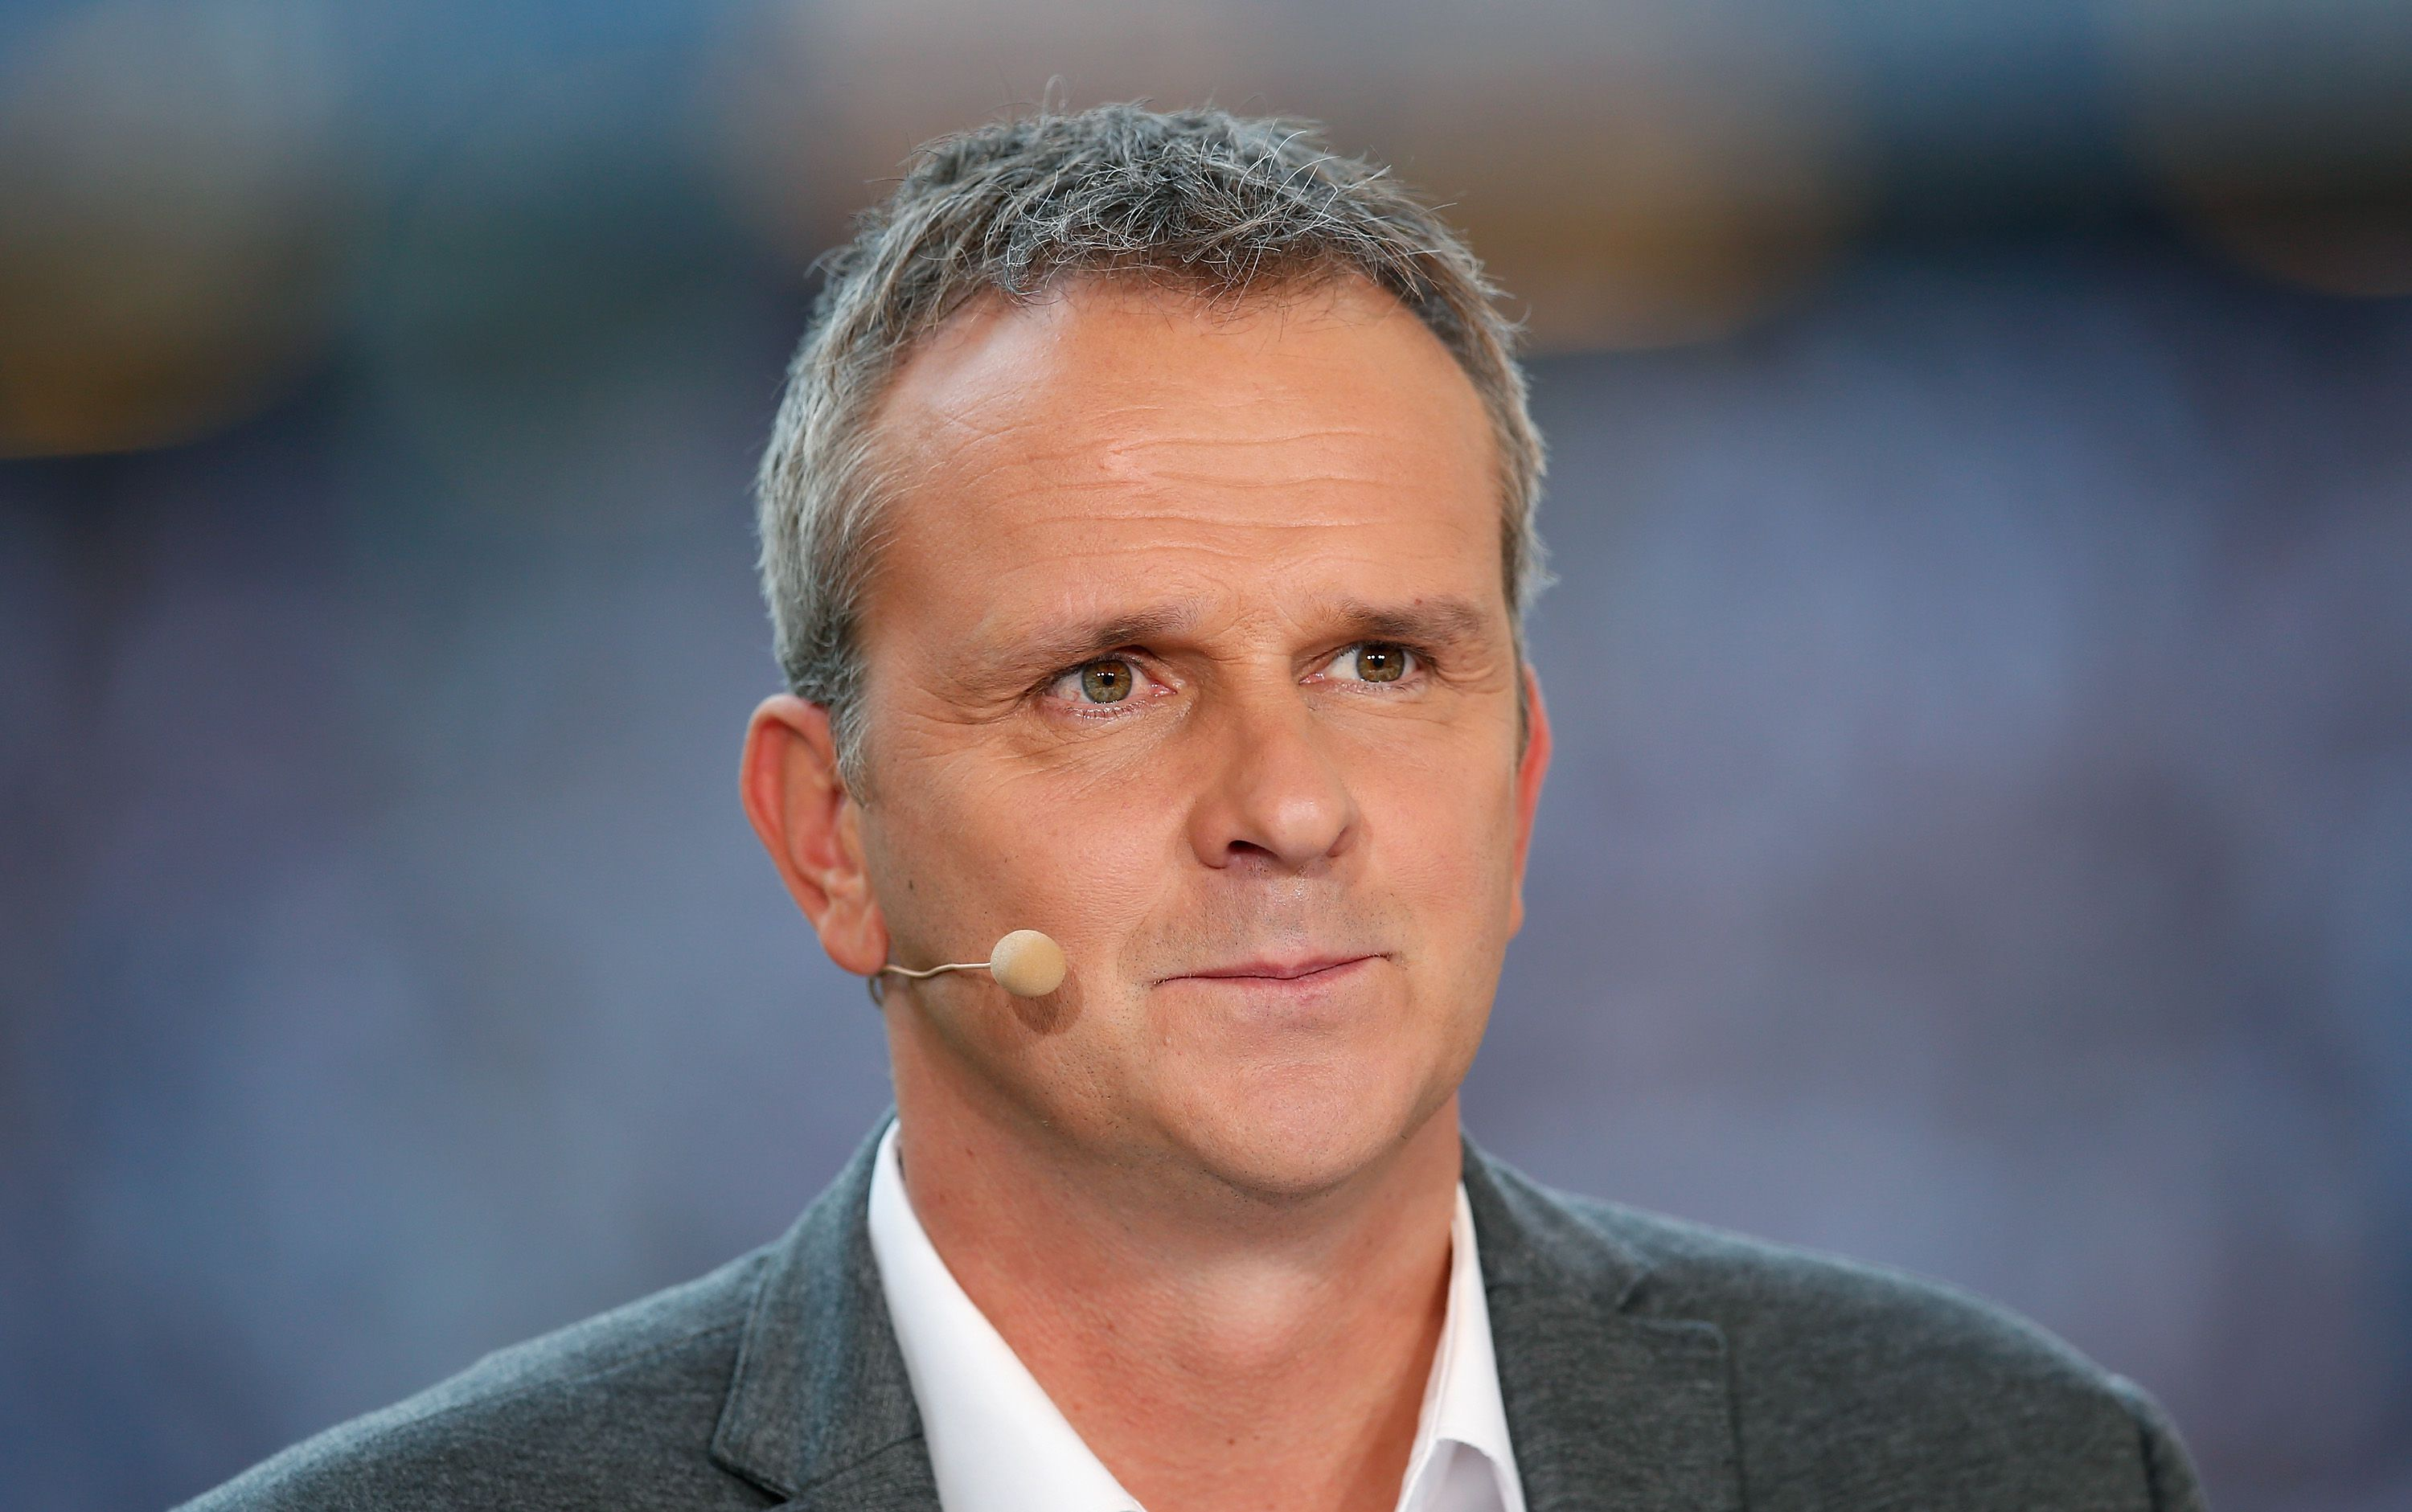 Liverpool legend Dietmar Hamann nails why England's Euro 2016 failure is actually no surprise